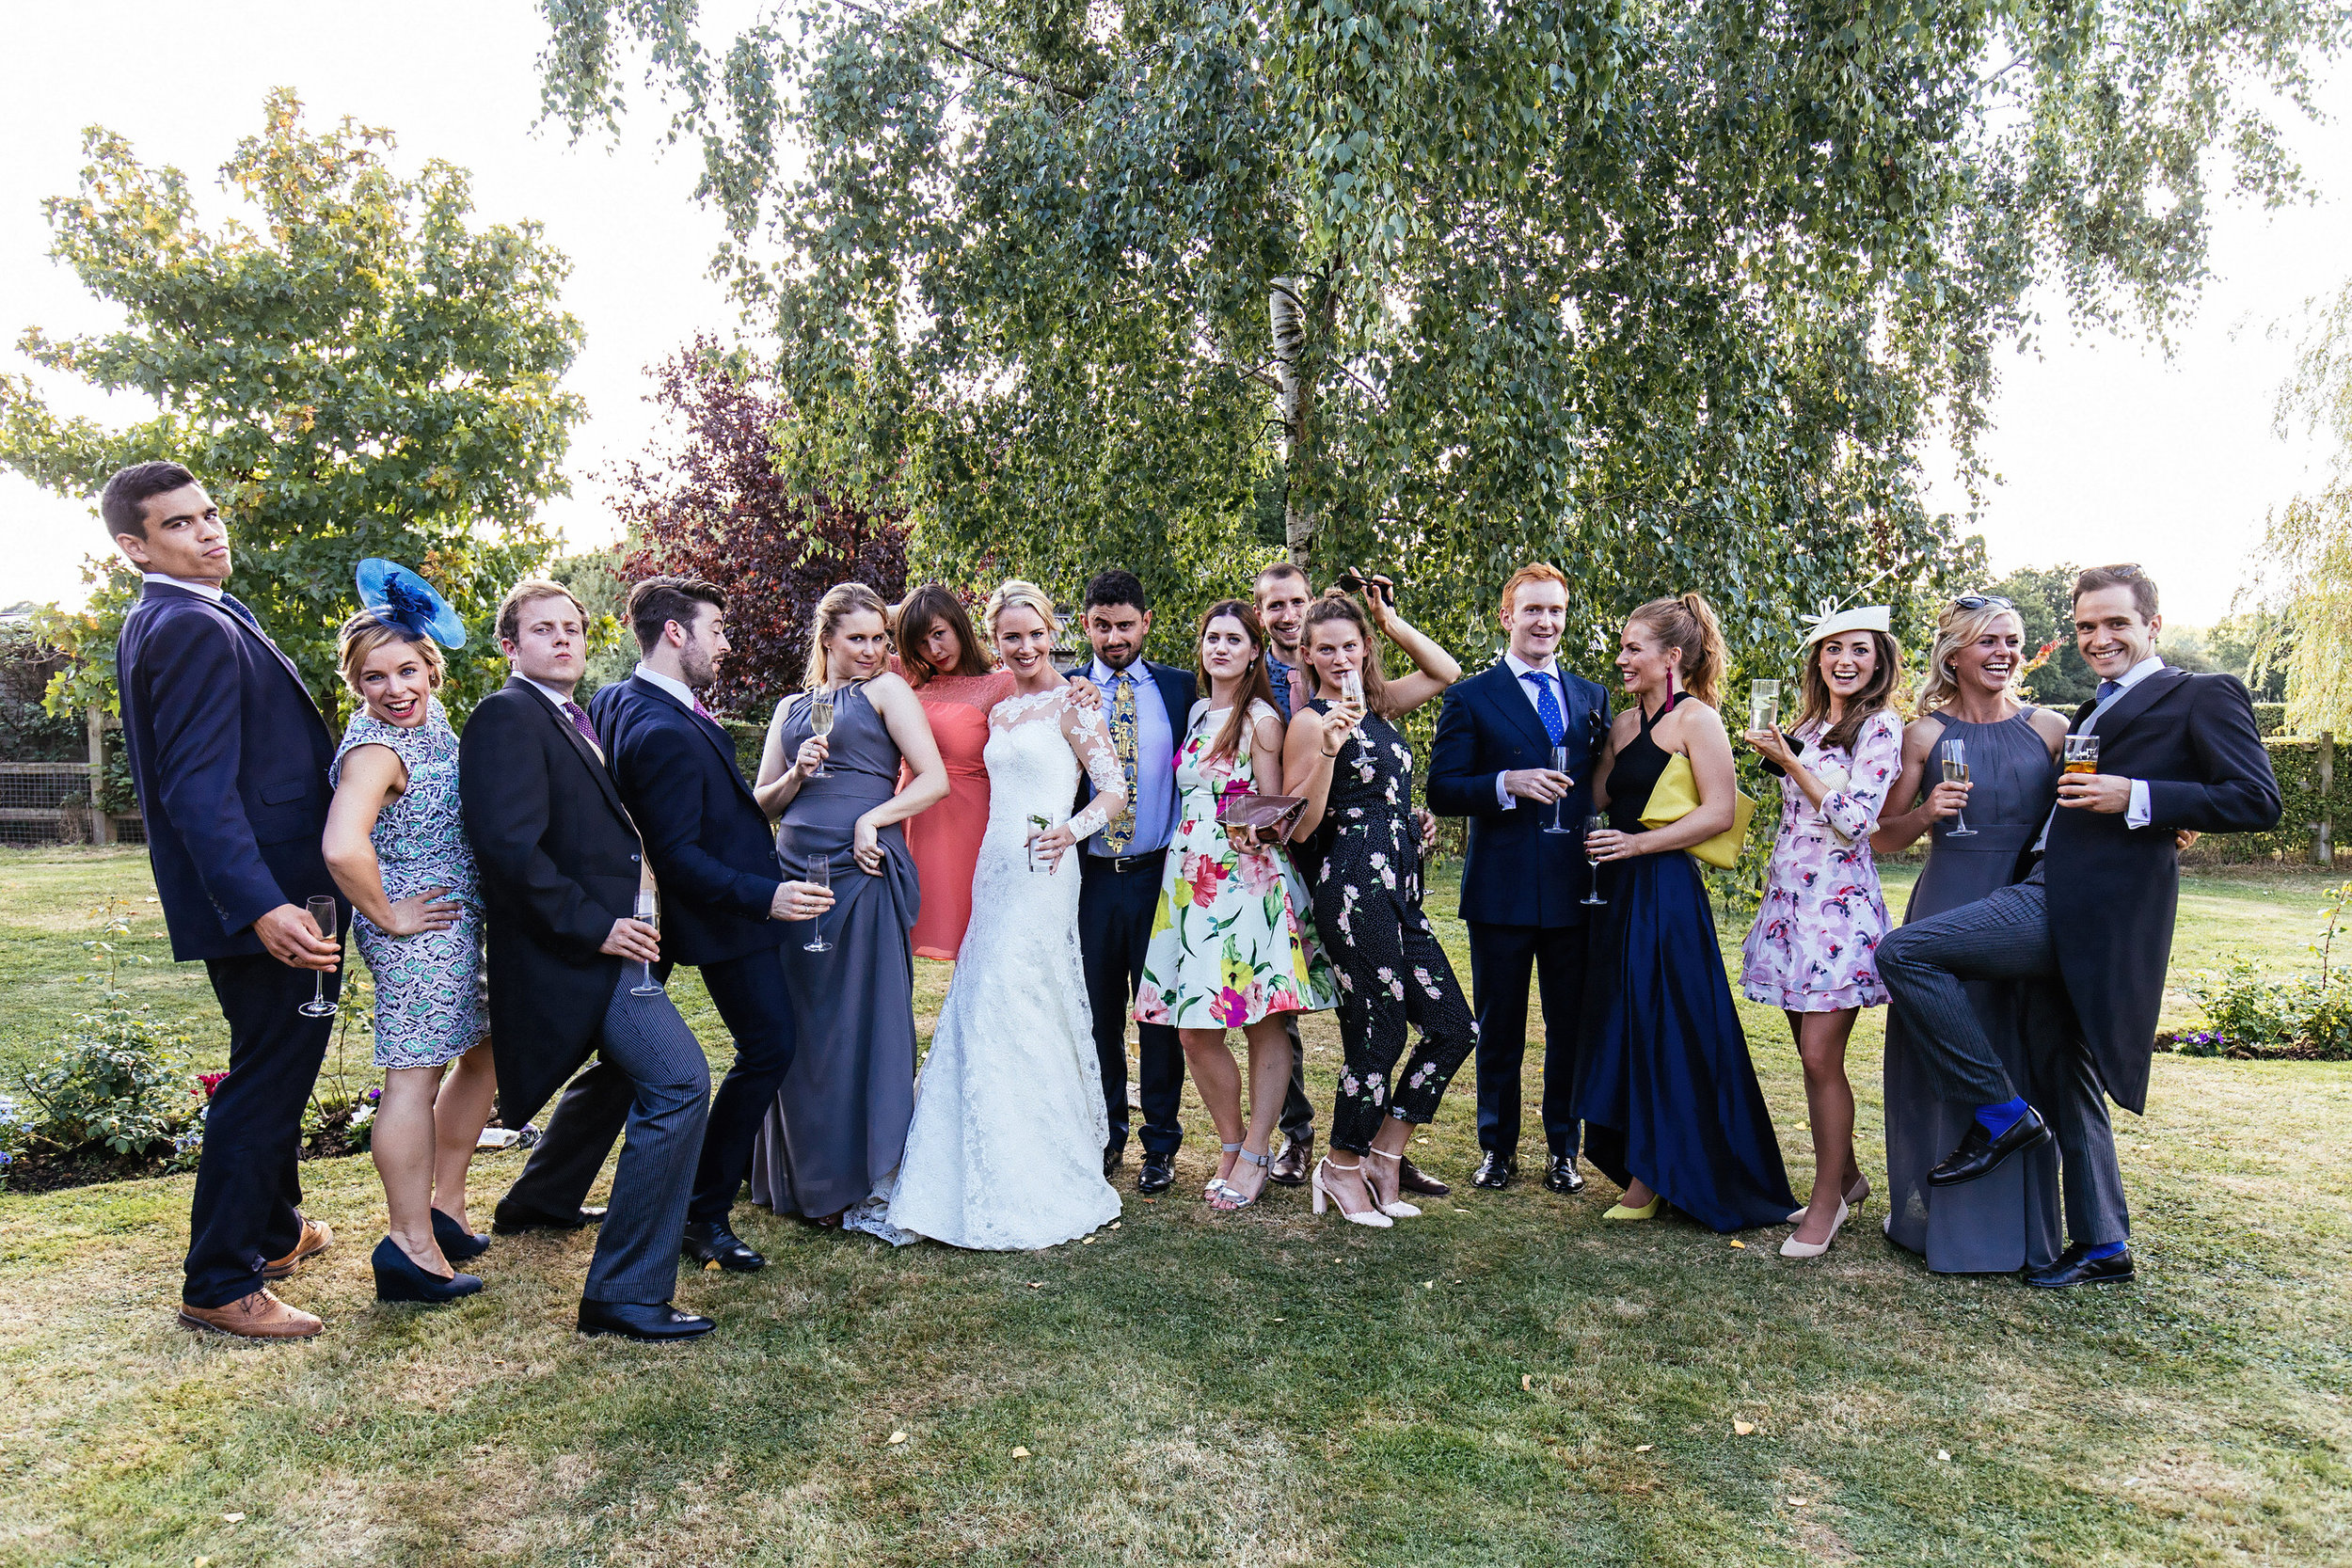 Biddenden Wedding Photographer 0098.jpg